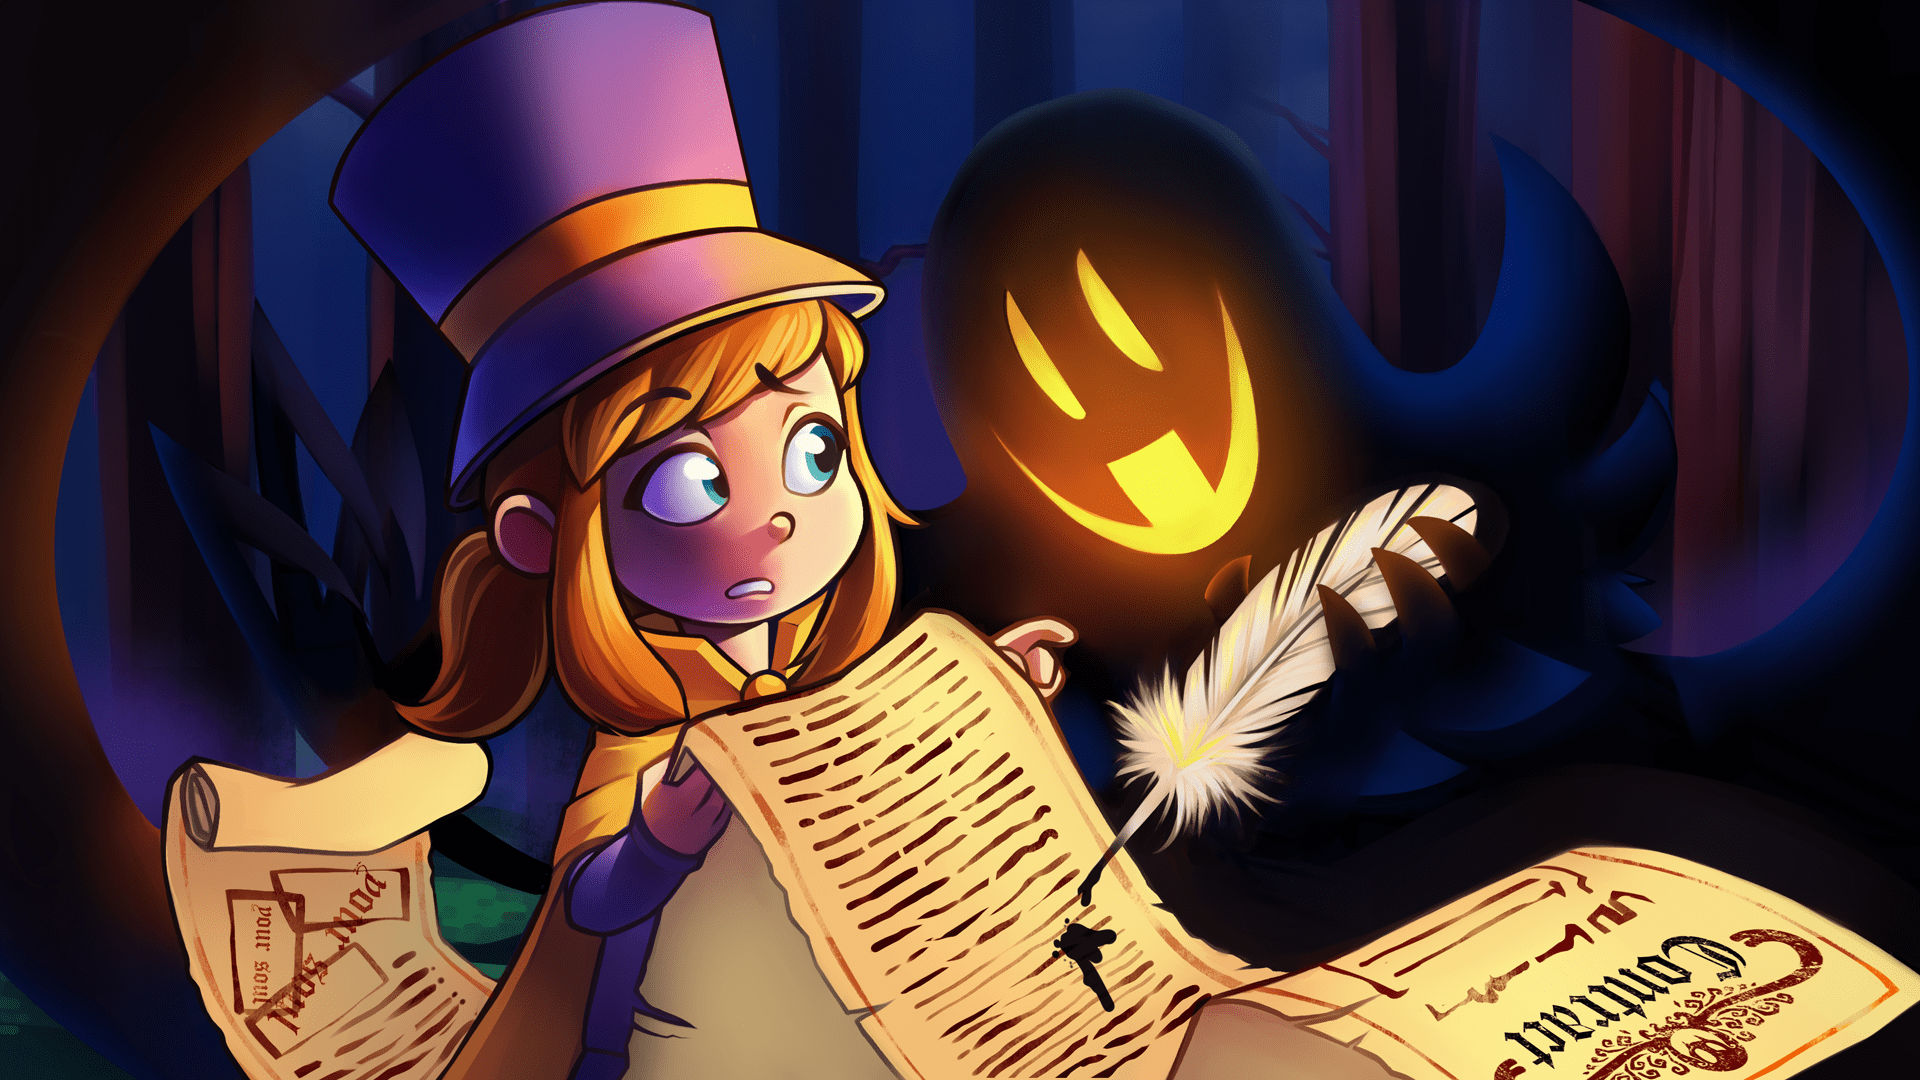 A Hat In Time is definitely not coming to Switch, despite hope screenshot